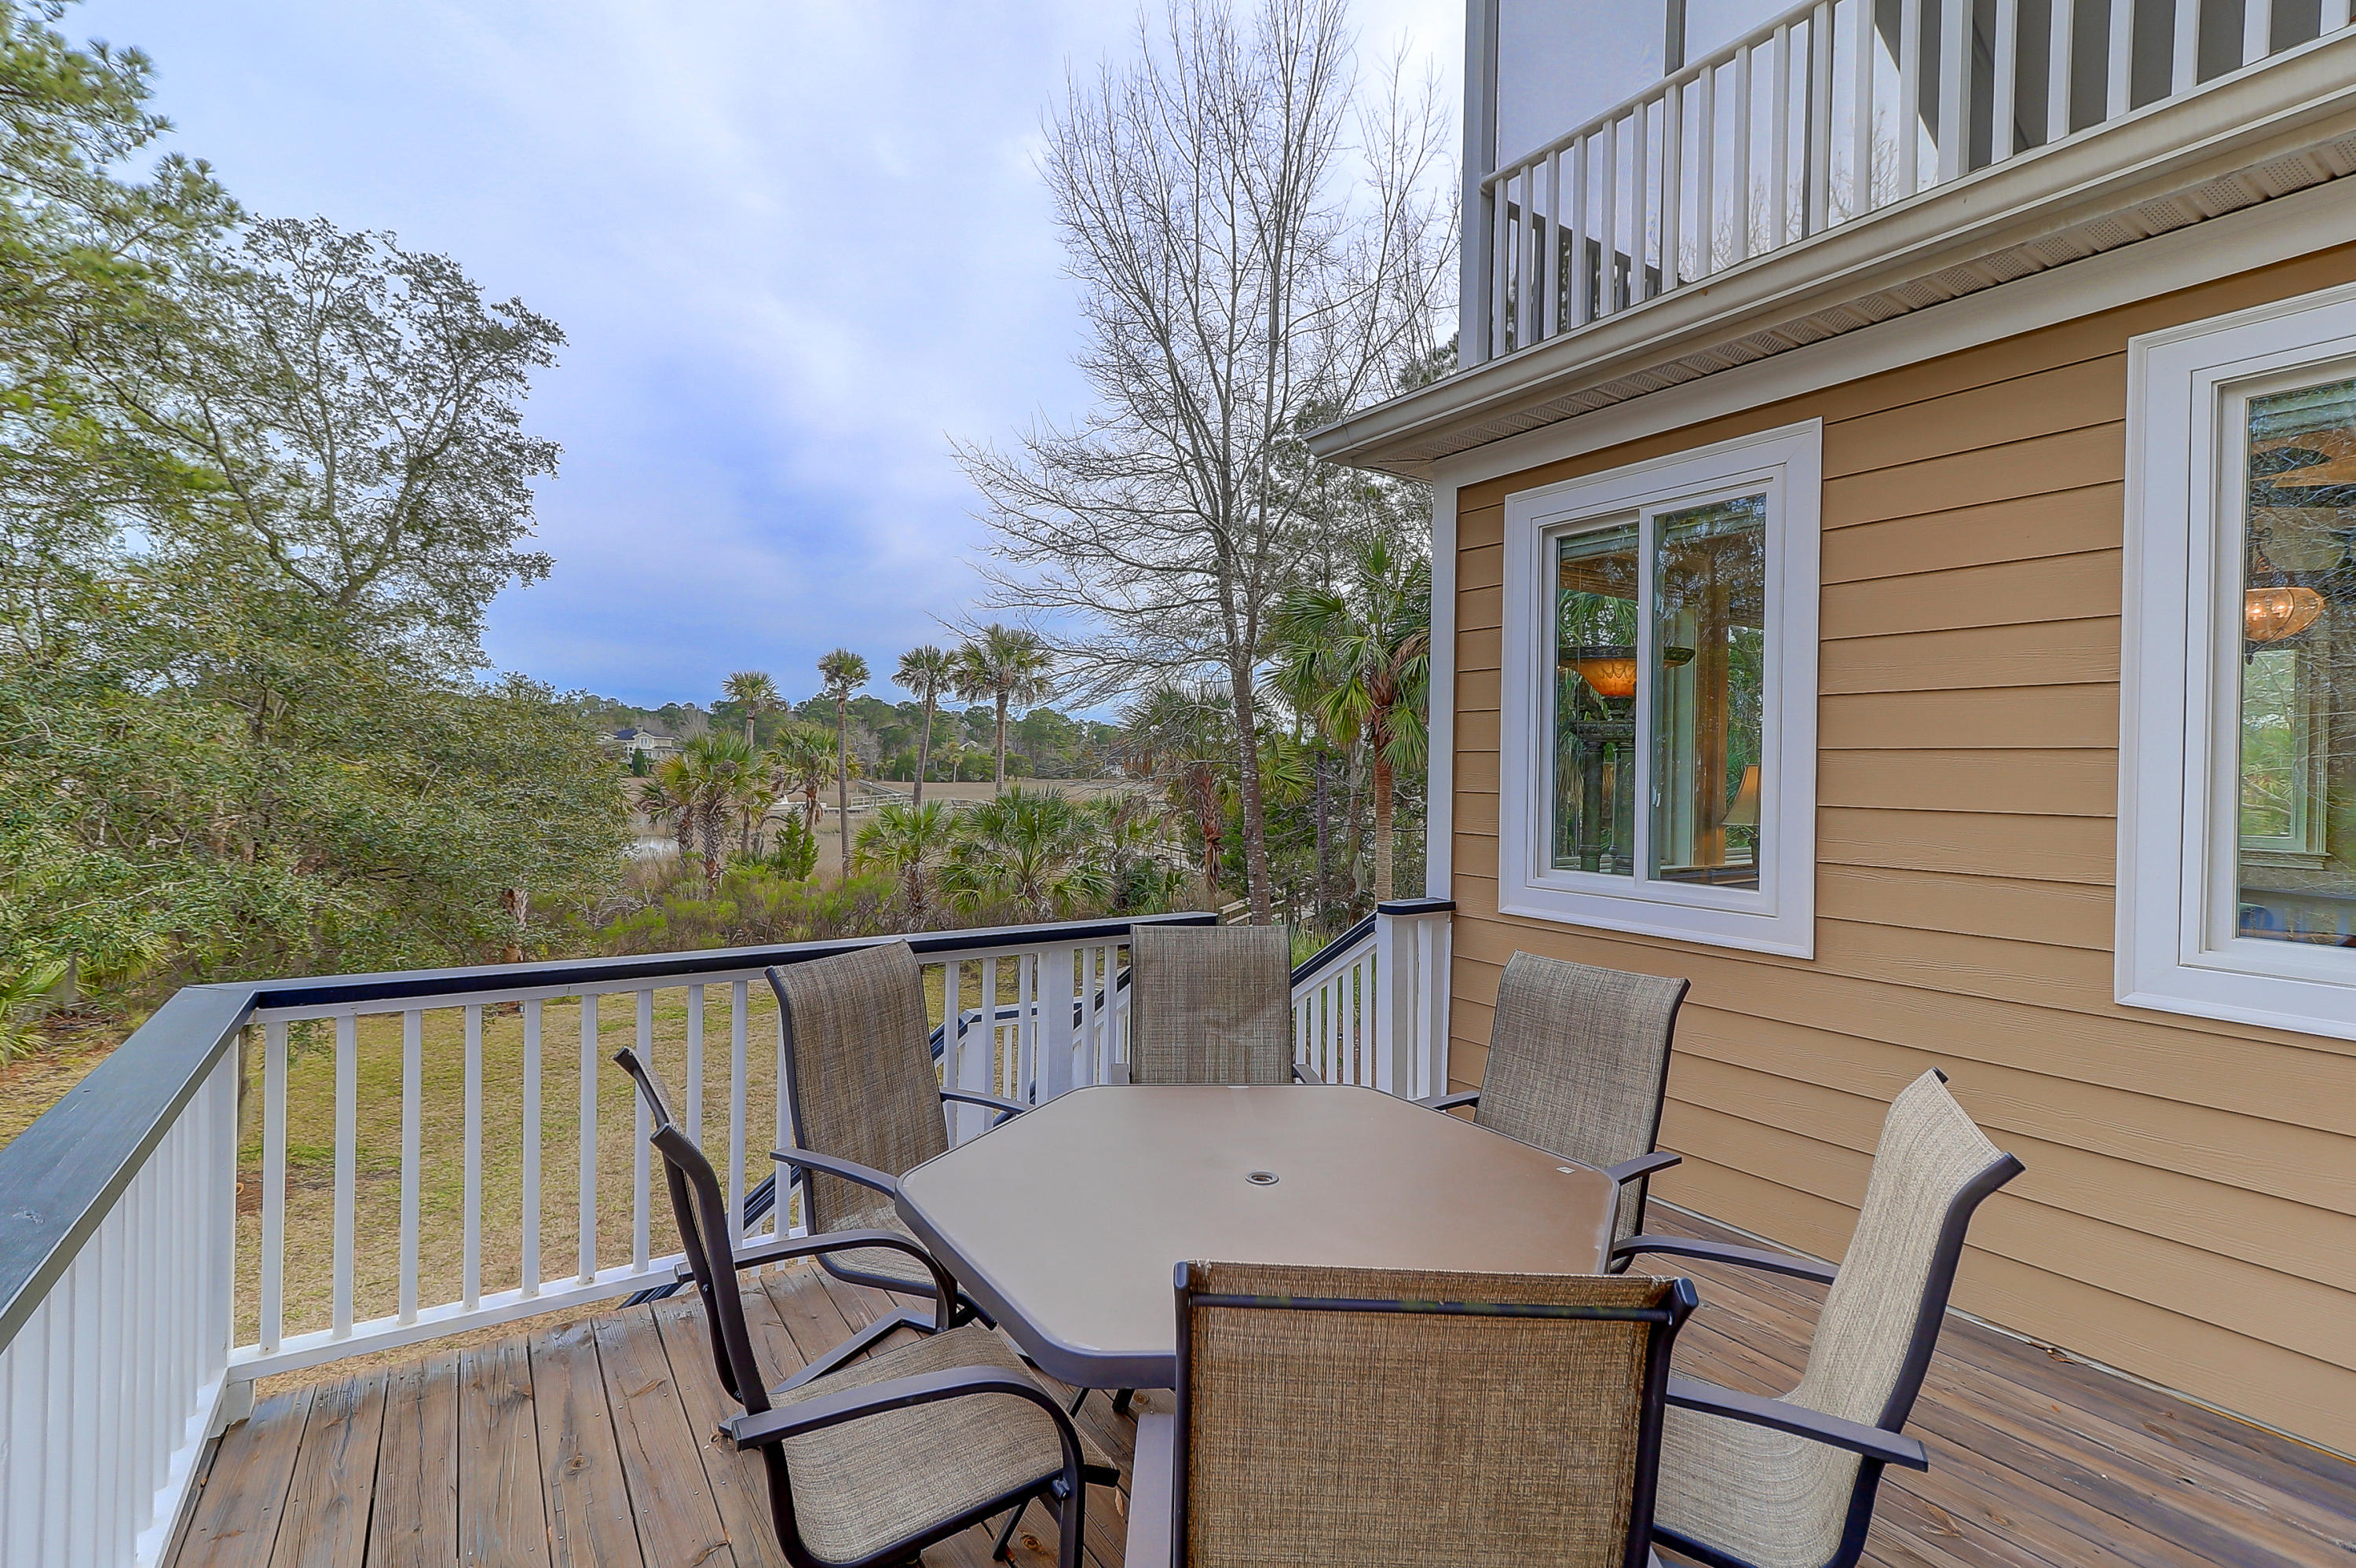 Dunes West Homes For Sale - 1764 Greenspoint, Mount Pleasant, SC - 67